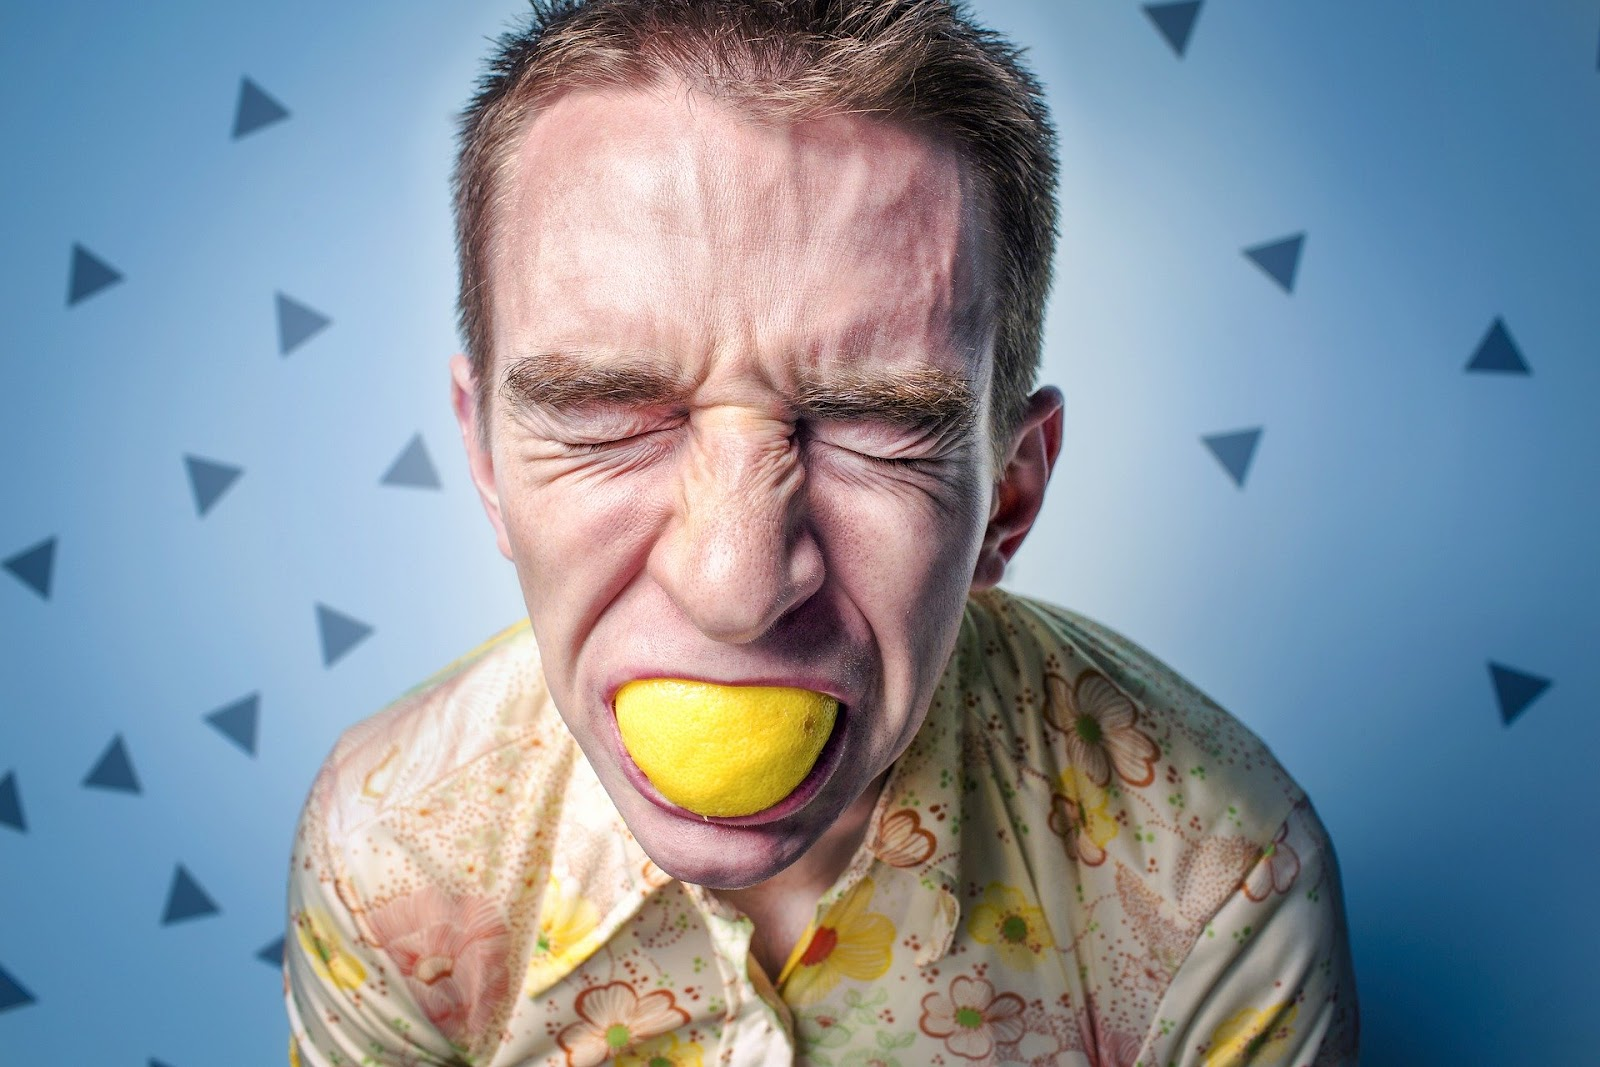 man with lemon in mouth